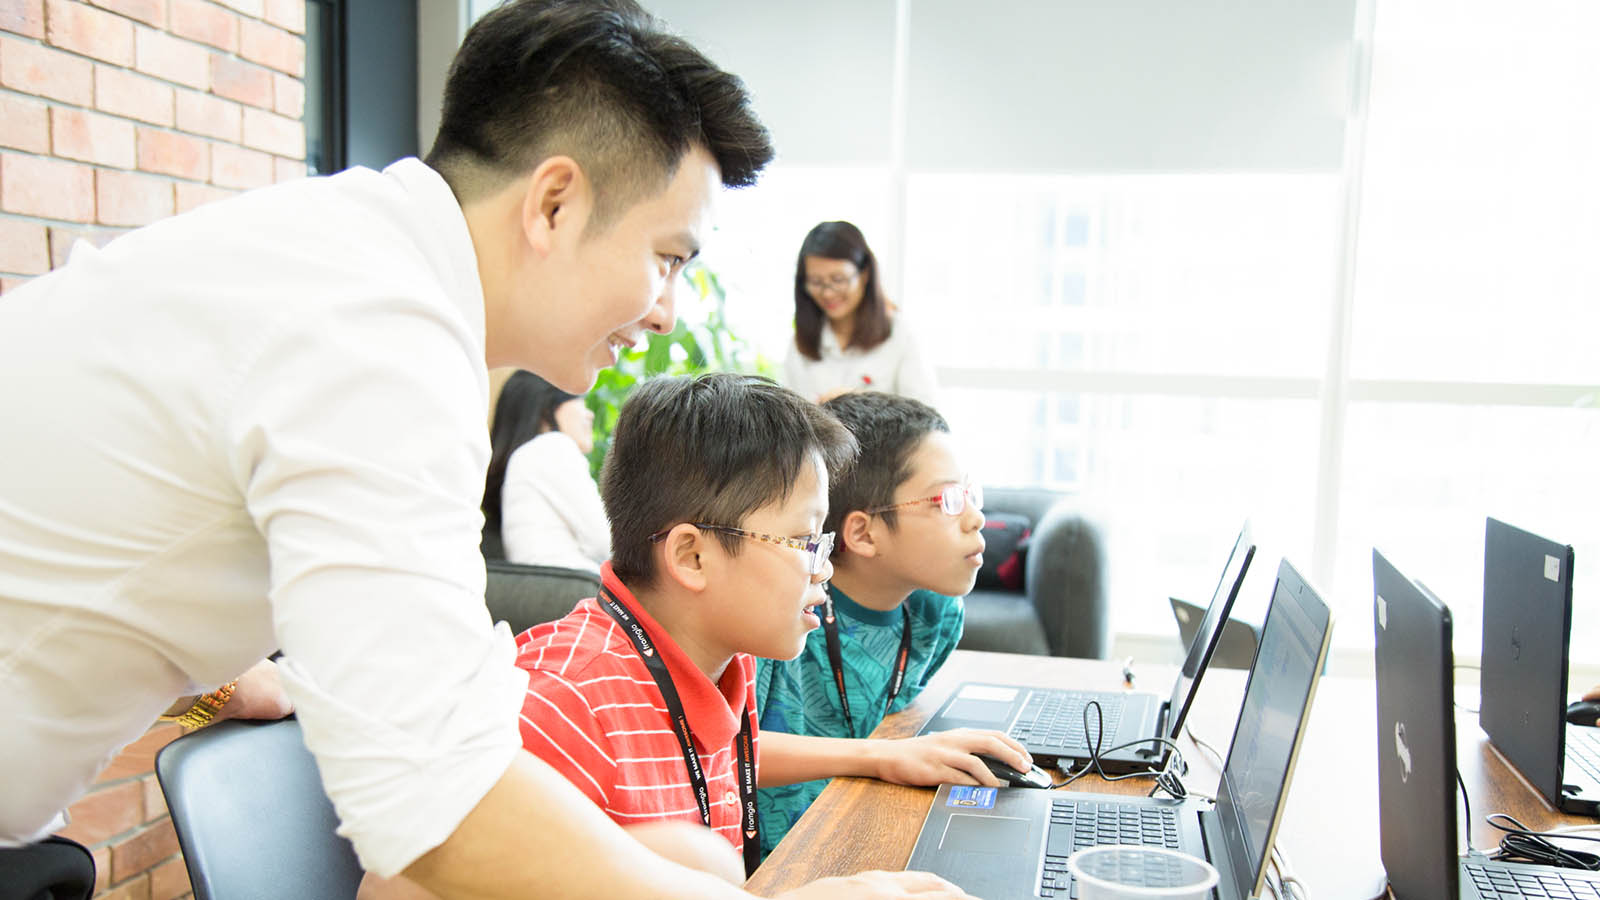 HOUR OF CODE VIETNAM